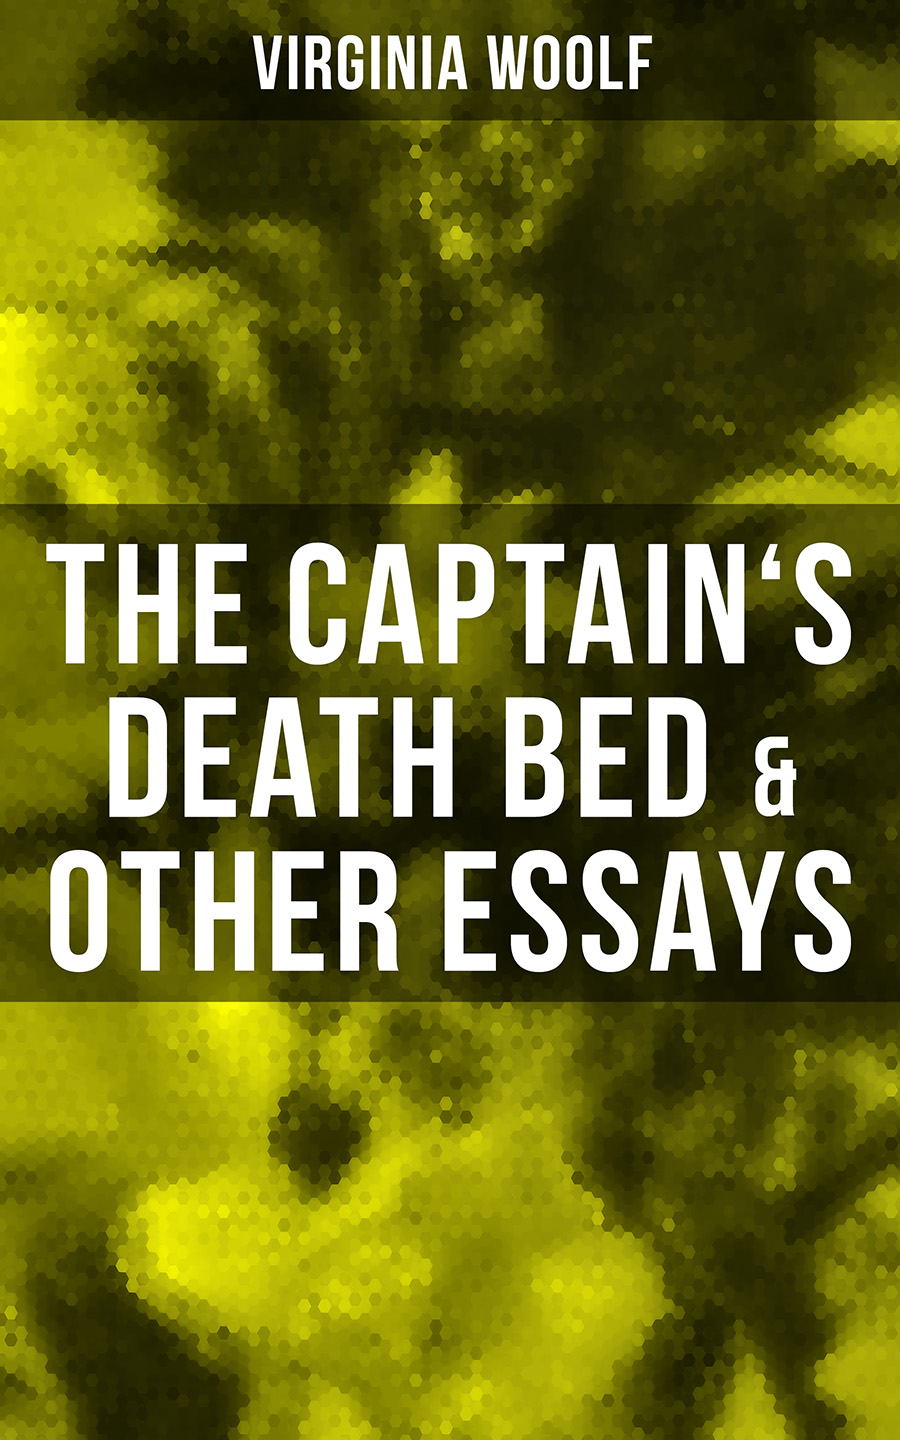 Virginia Woolf The Captain's Death Bed & Other Essays virginia woolf the collected essays of virginia woolf